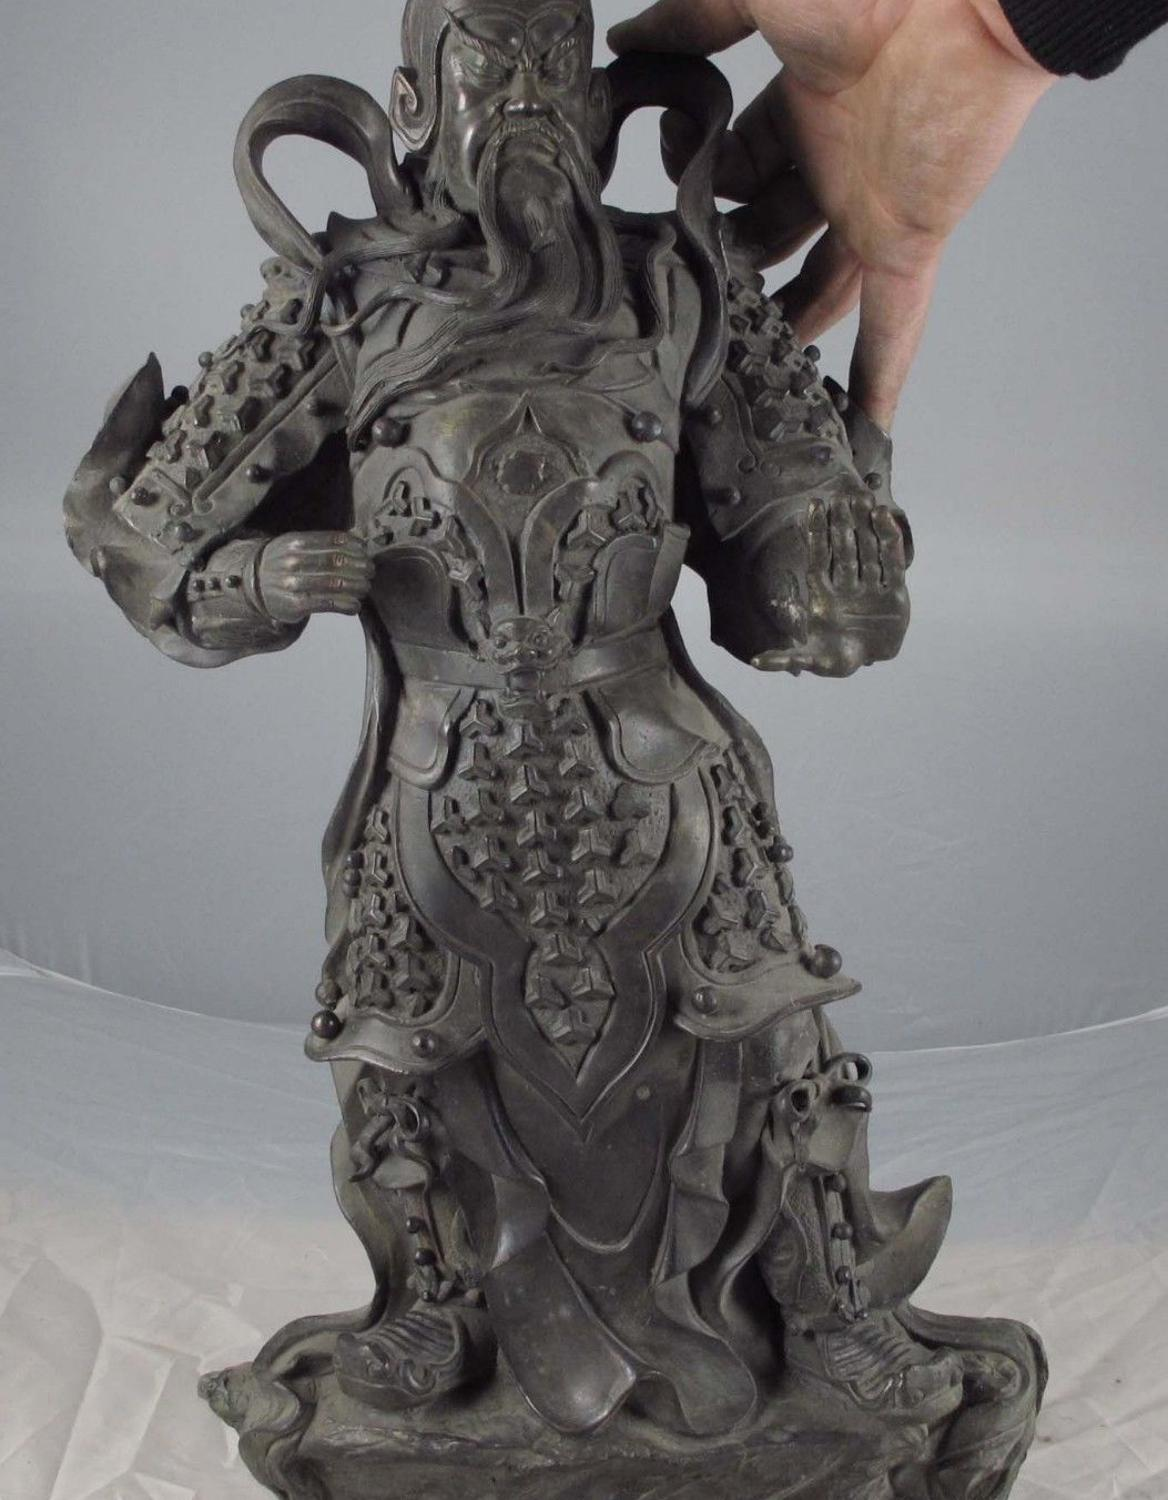 22 China Old Copper Bronze Army General Guan Gong GuanYu Warrior God Art Statue